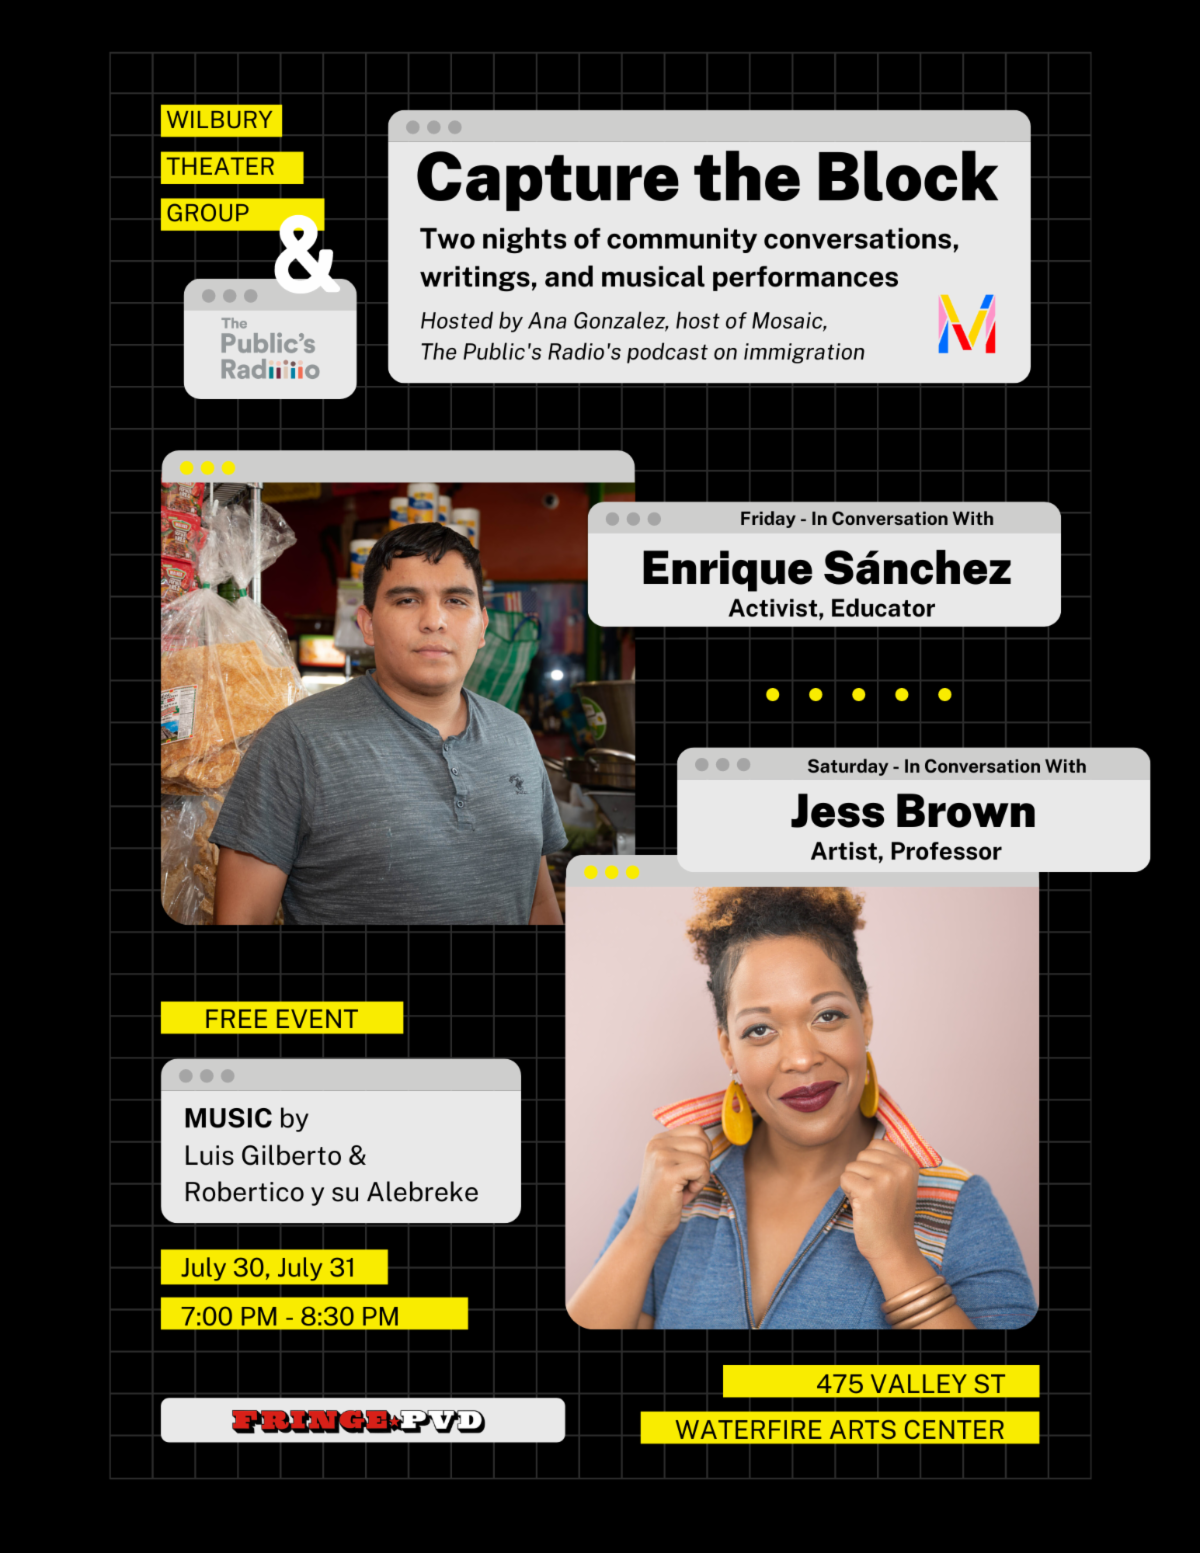 Wilbury Theater Group and The Public's Radio present Capture the Block. Two night sof community conversations, writings, and musical performances hosted by Ana Gonzalez. Conversations with Enrique Sanchez and Jess Brown.